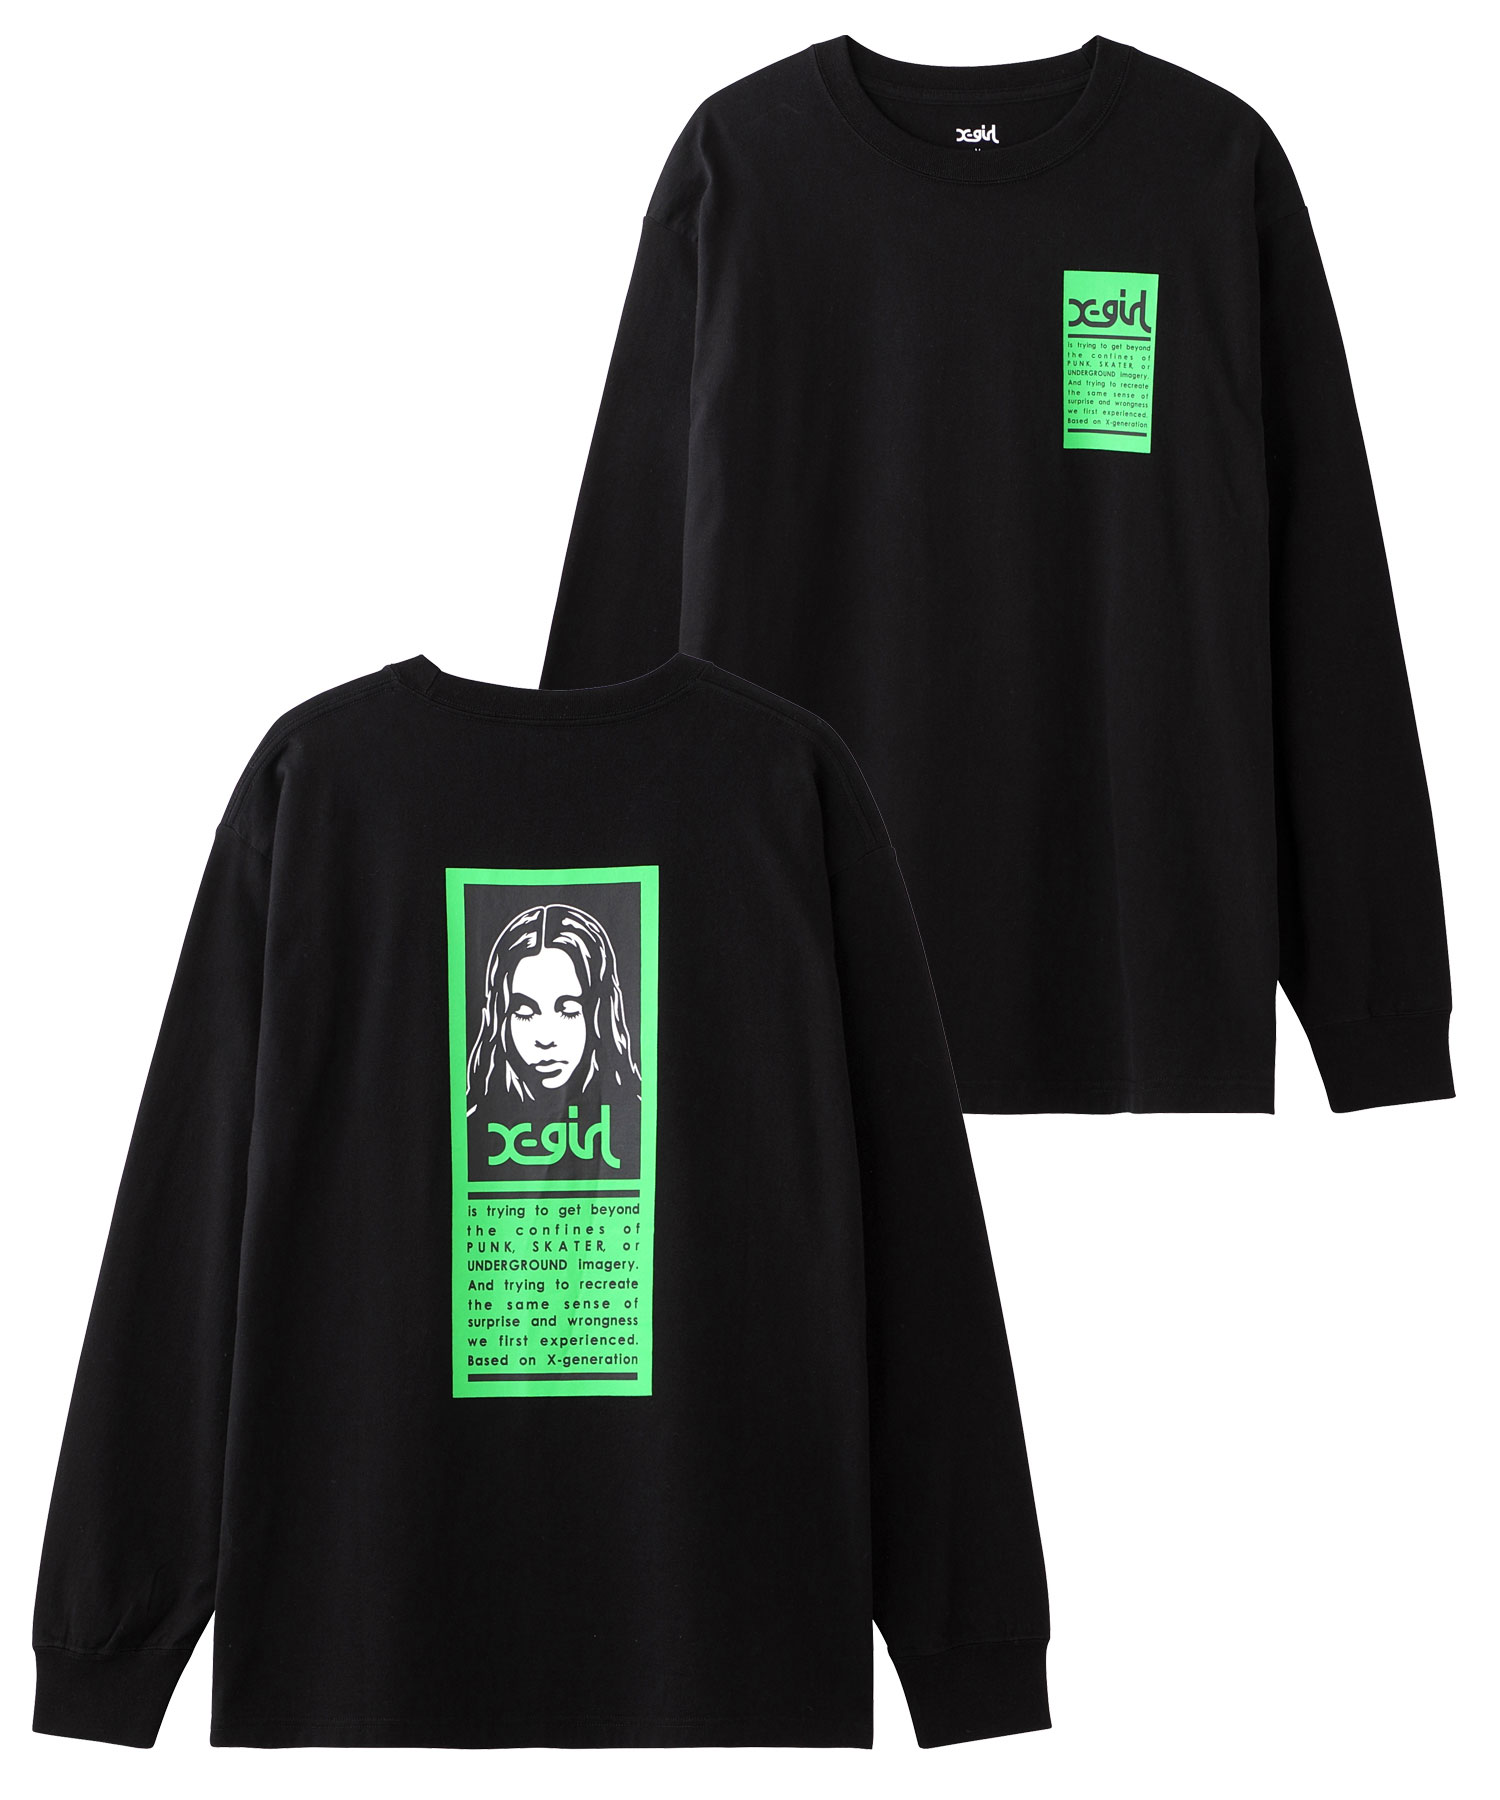 X-girl(エックスガール)通販|WORDS FACE L/S TEE(ブラック)